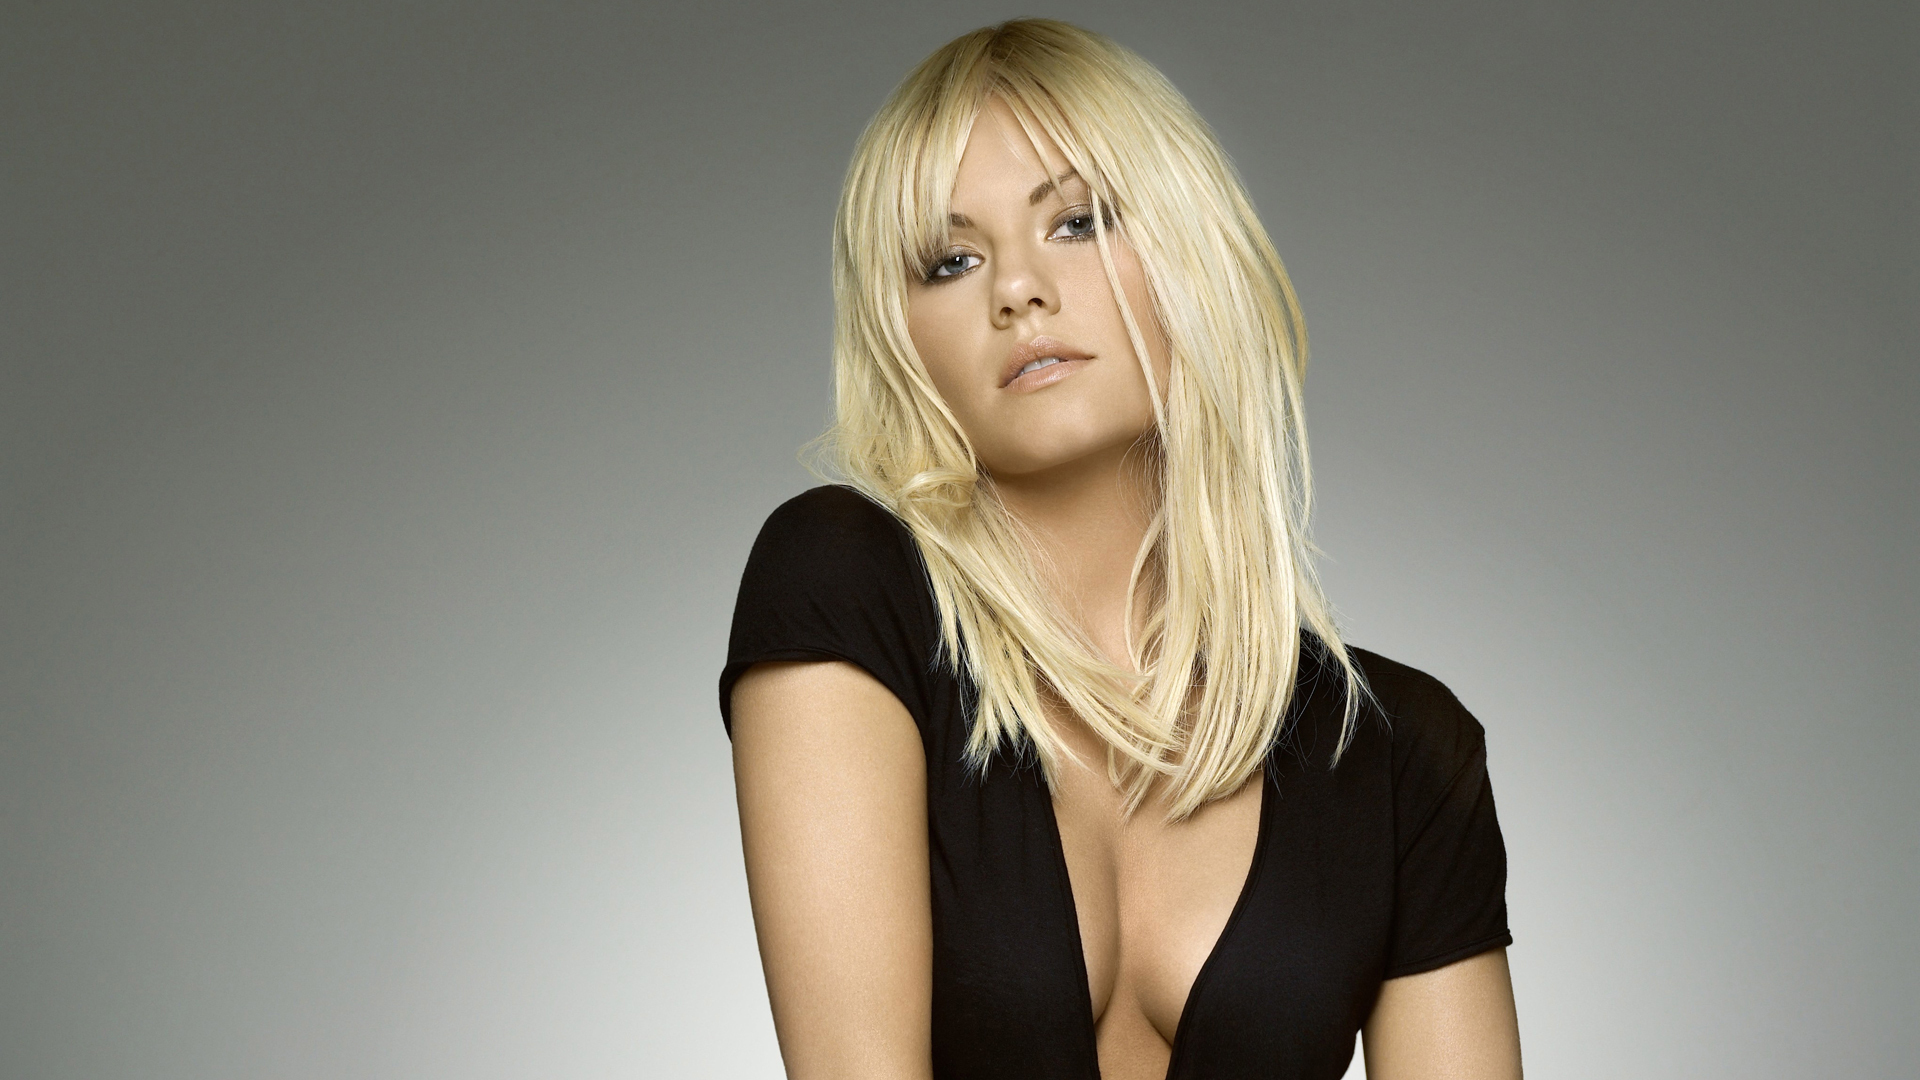 Elisha Cuthbert Wallpapers Pictures Images